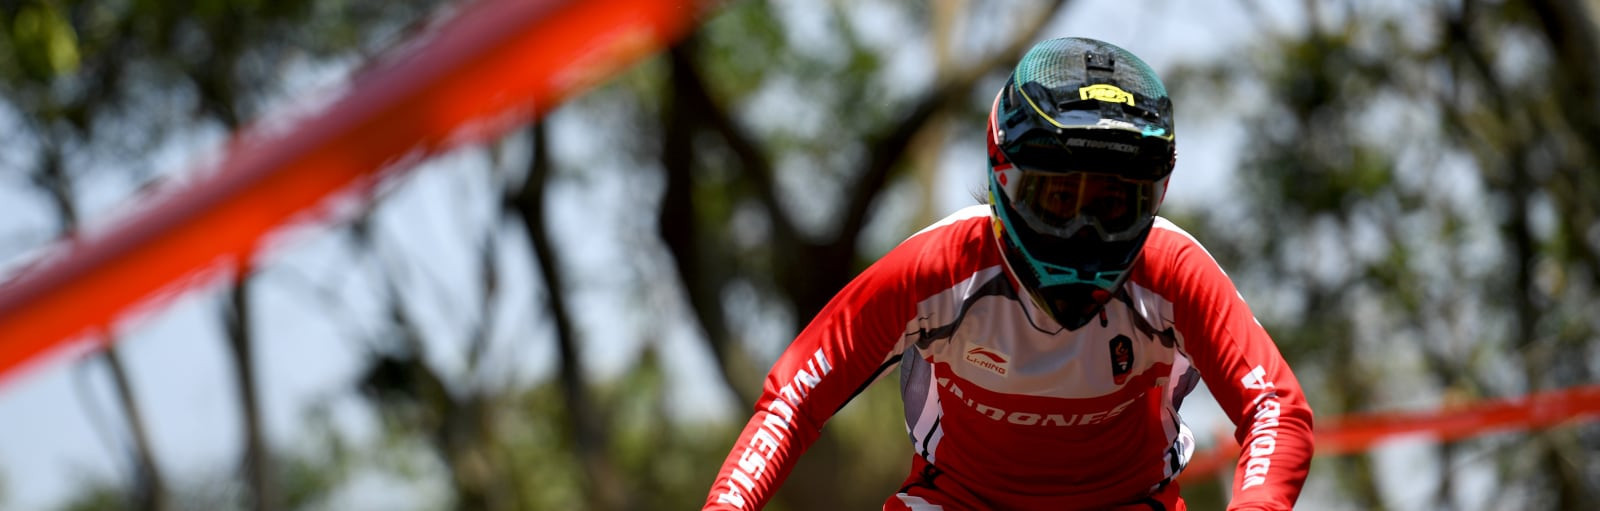 Hosts Indonesia won two cycling mountain bike gold medals as the men's and women's downhill events took centre stage ©Asian Games 2018